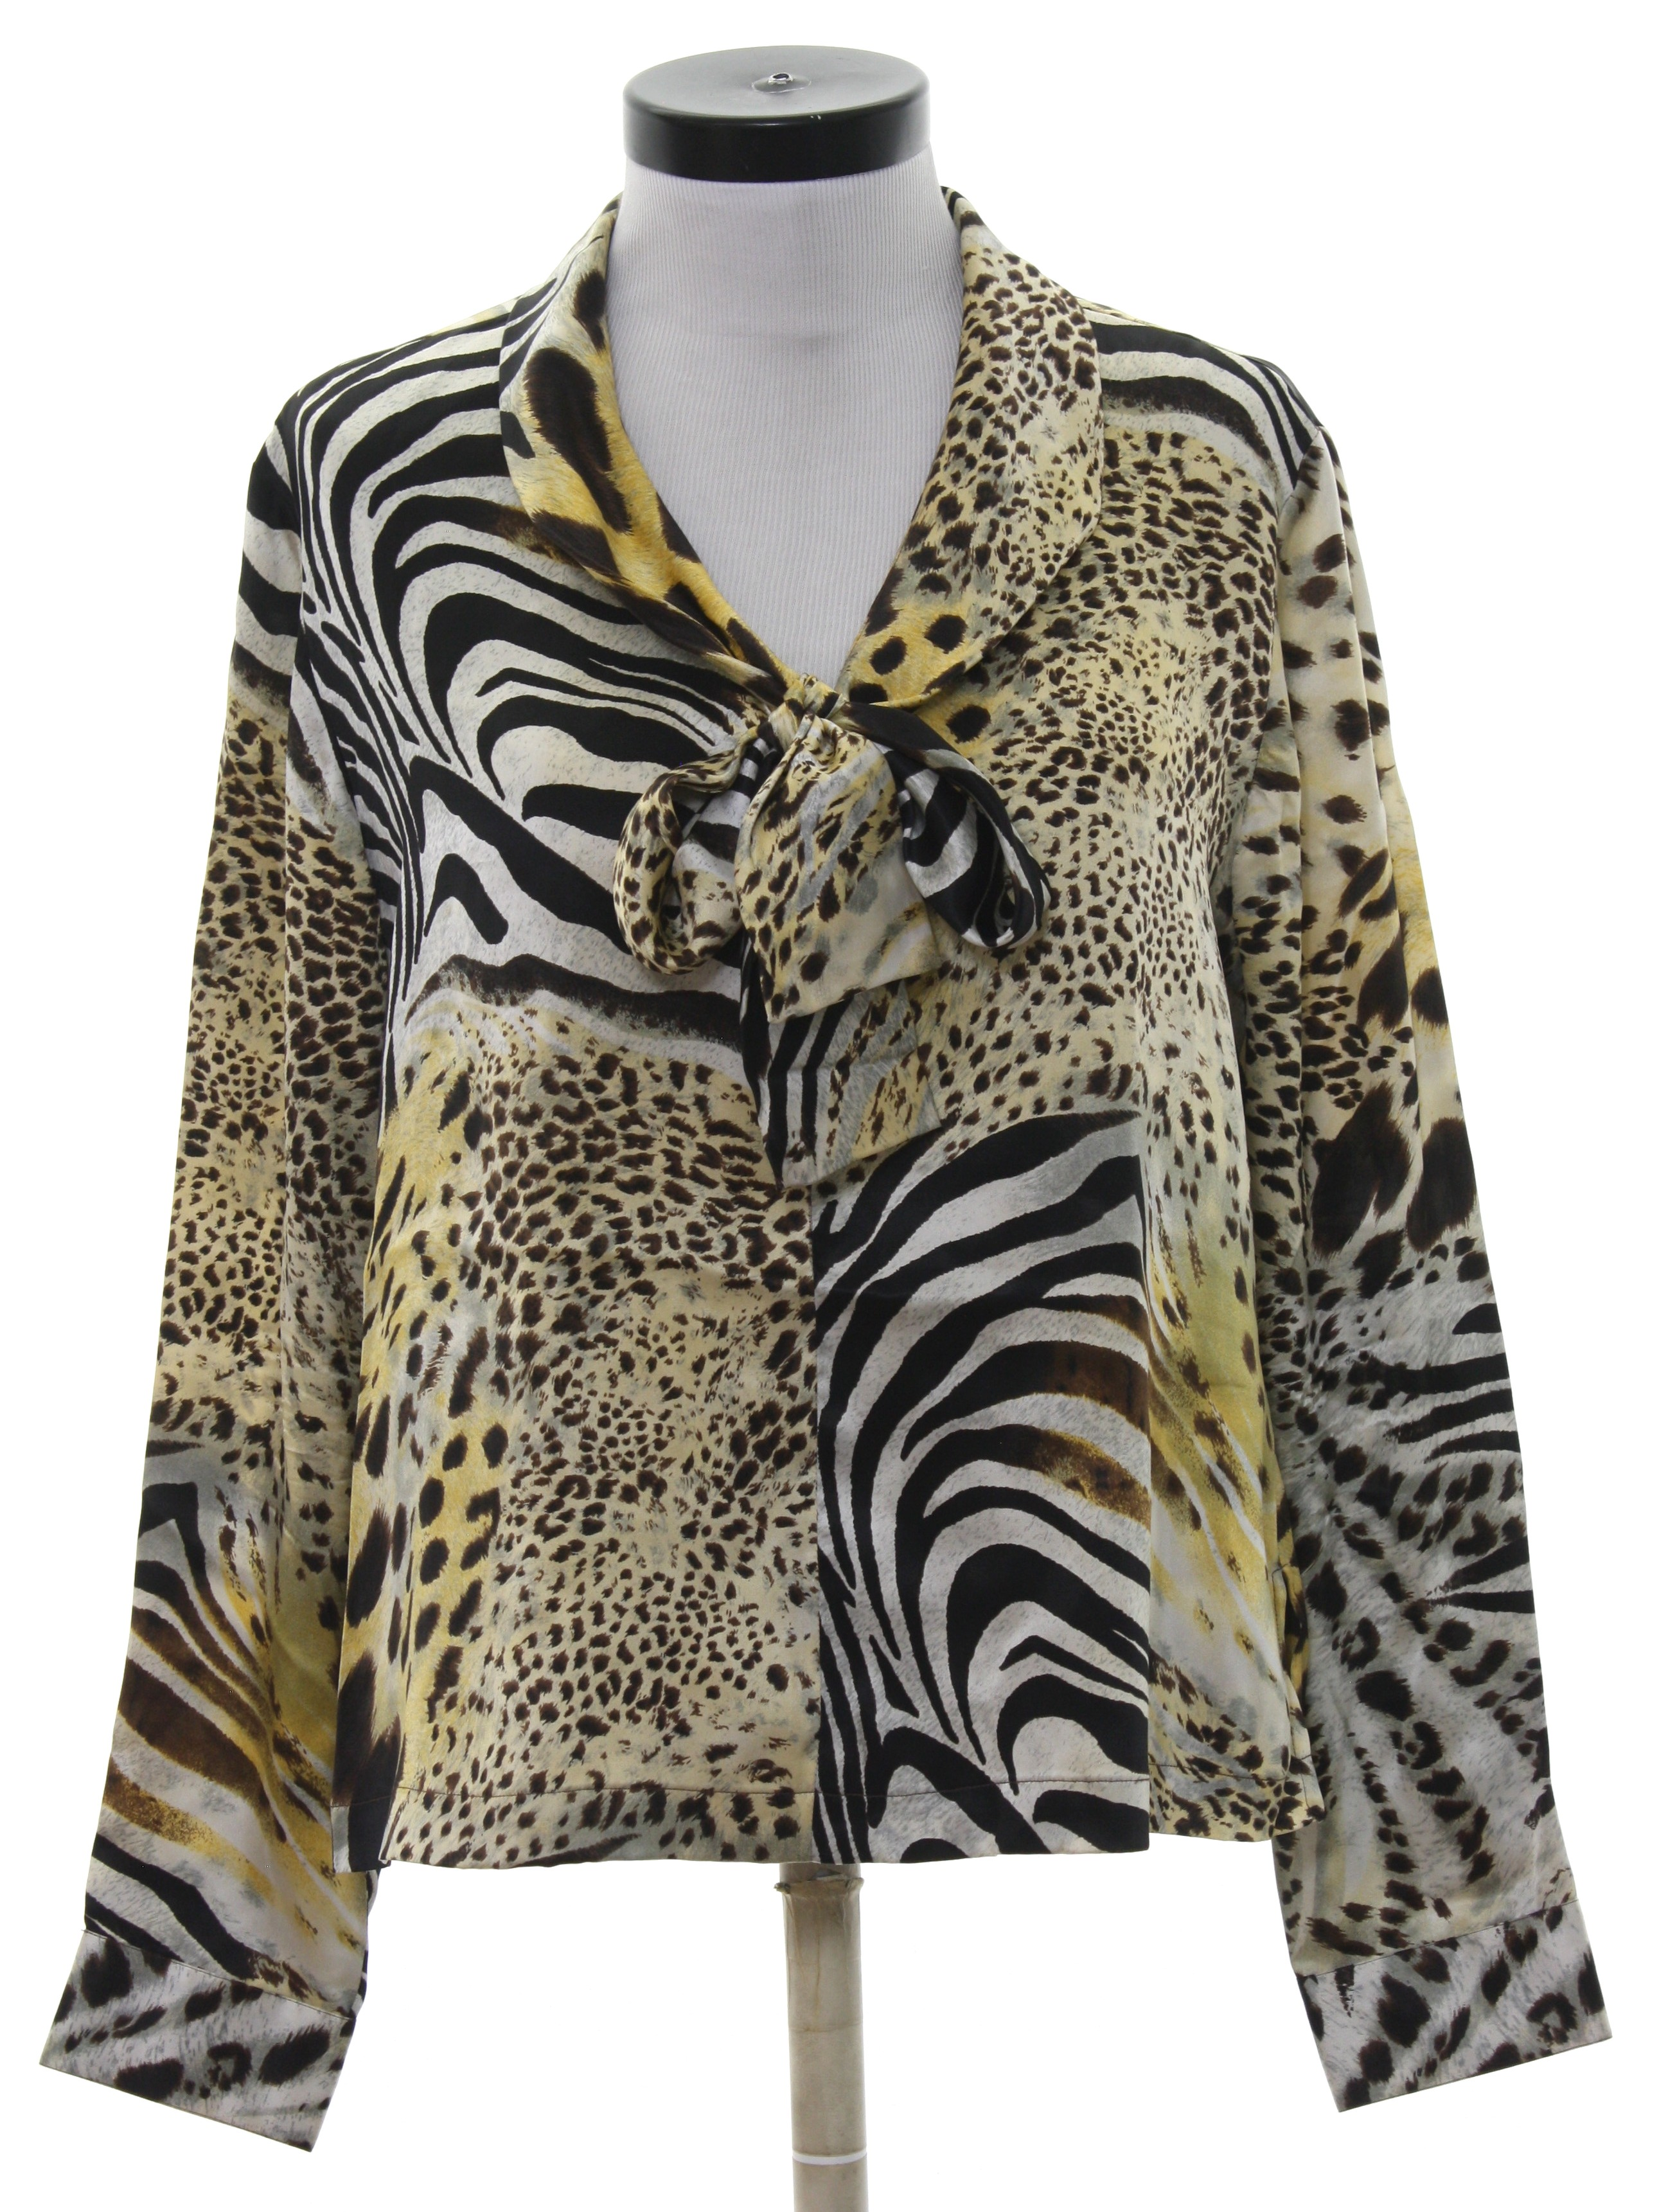 2a9eb44ccea1c 80 s Collection Shirt  80s -Collection- Womens cream background silk button  cuff longsleeve pullover shirt. Bold animal print in shades of brown